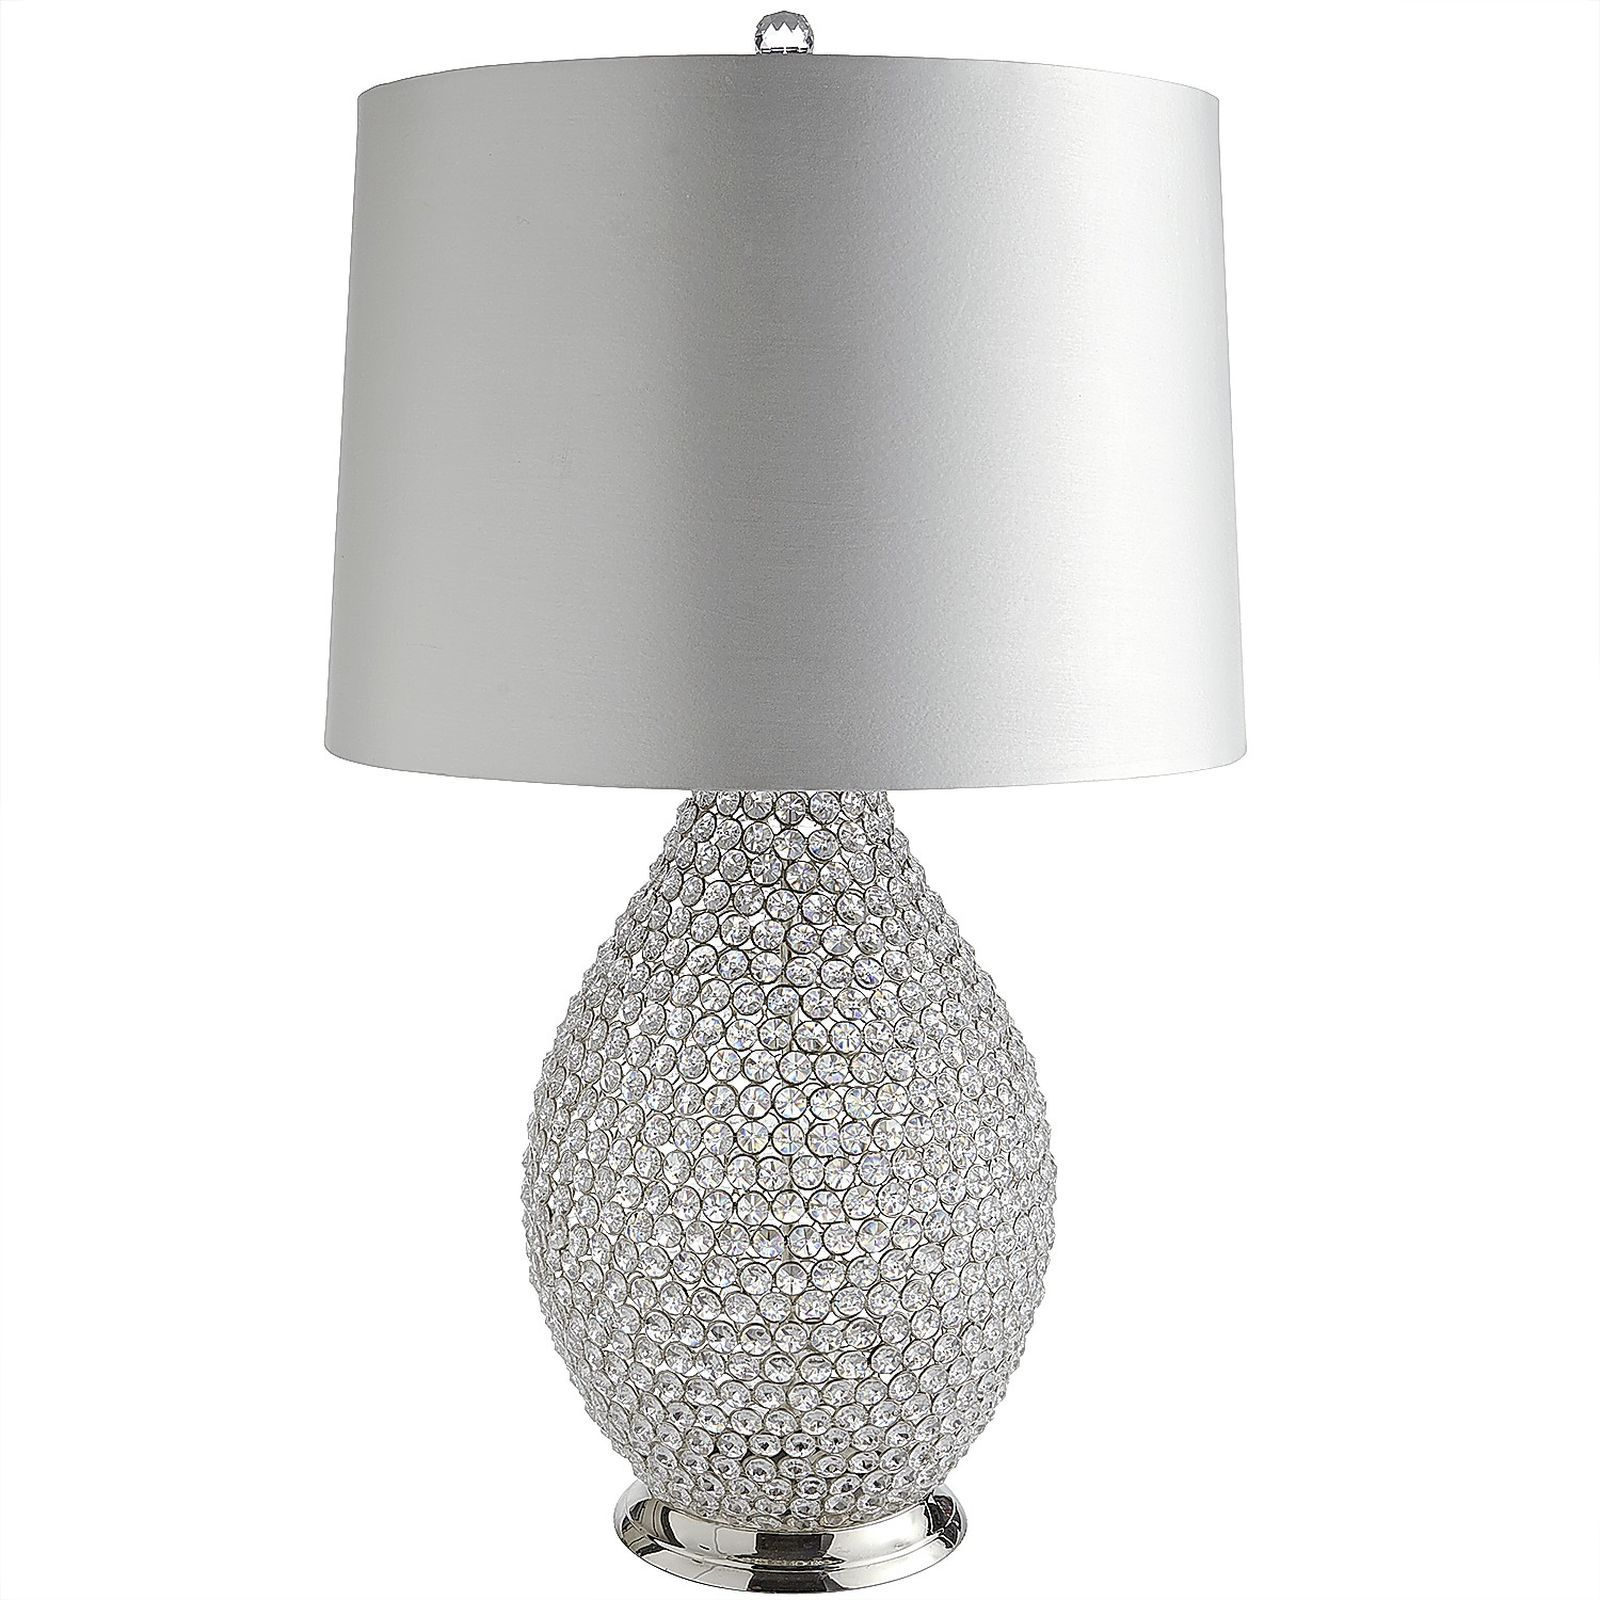 Countless Crystal Beads Are Individually Strung To Create This Lampu0027s  Stunning Vase, Allowing You To